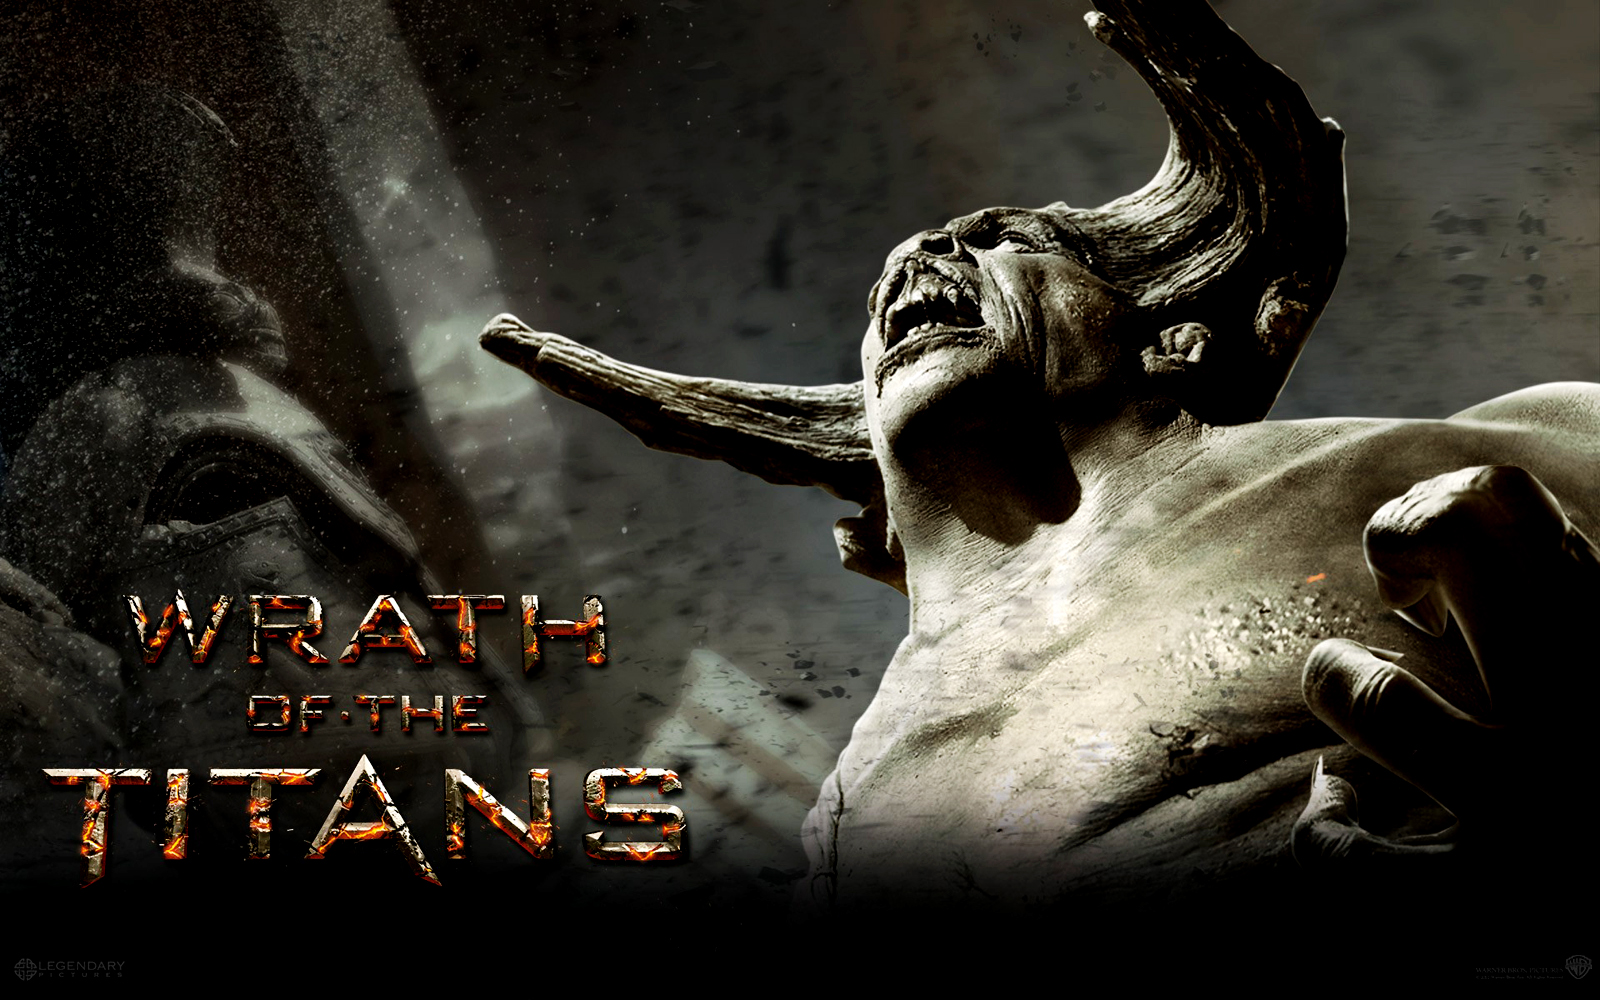 http://2.bp.blogspot.com/-Ke-txrkpICc/T0PZs0OGuPI/AAAAAAAAAr0/8UqpyvLqZCg/s1600/Wrath_of_The_Titans_2012_Movie_Minataur_Poster-Vvallpaper.Net.jpg